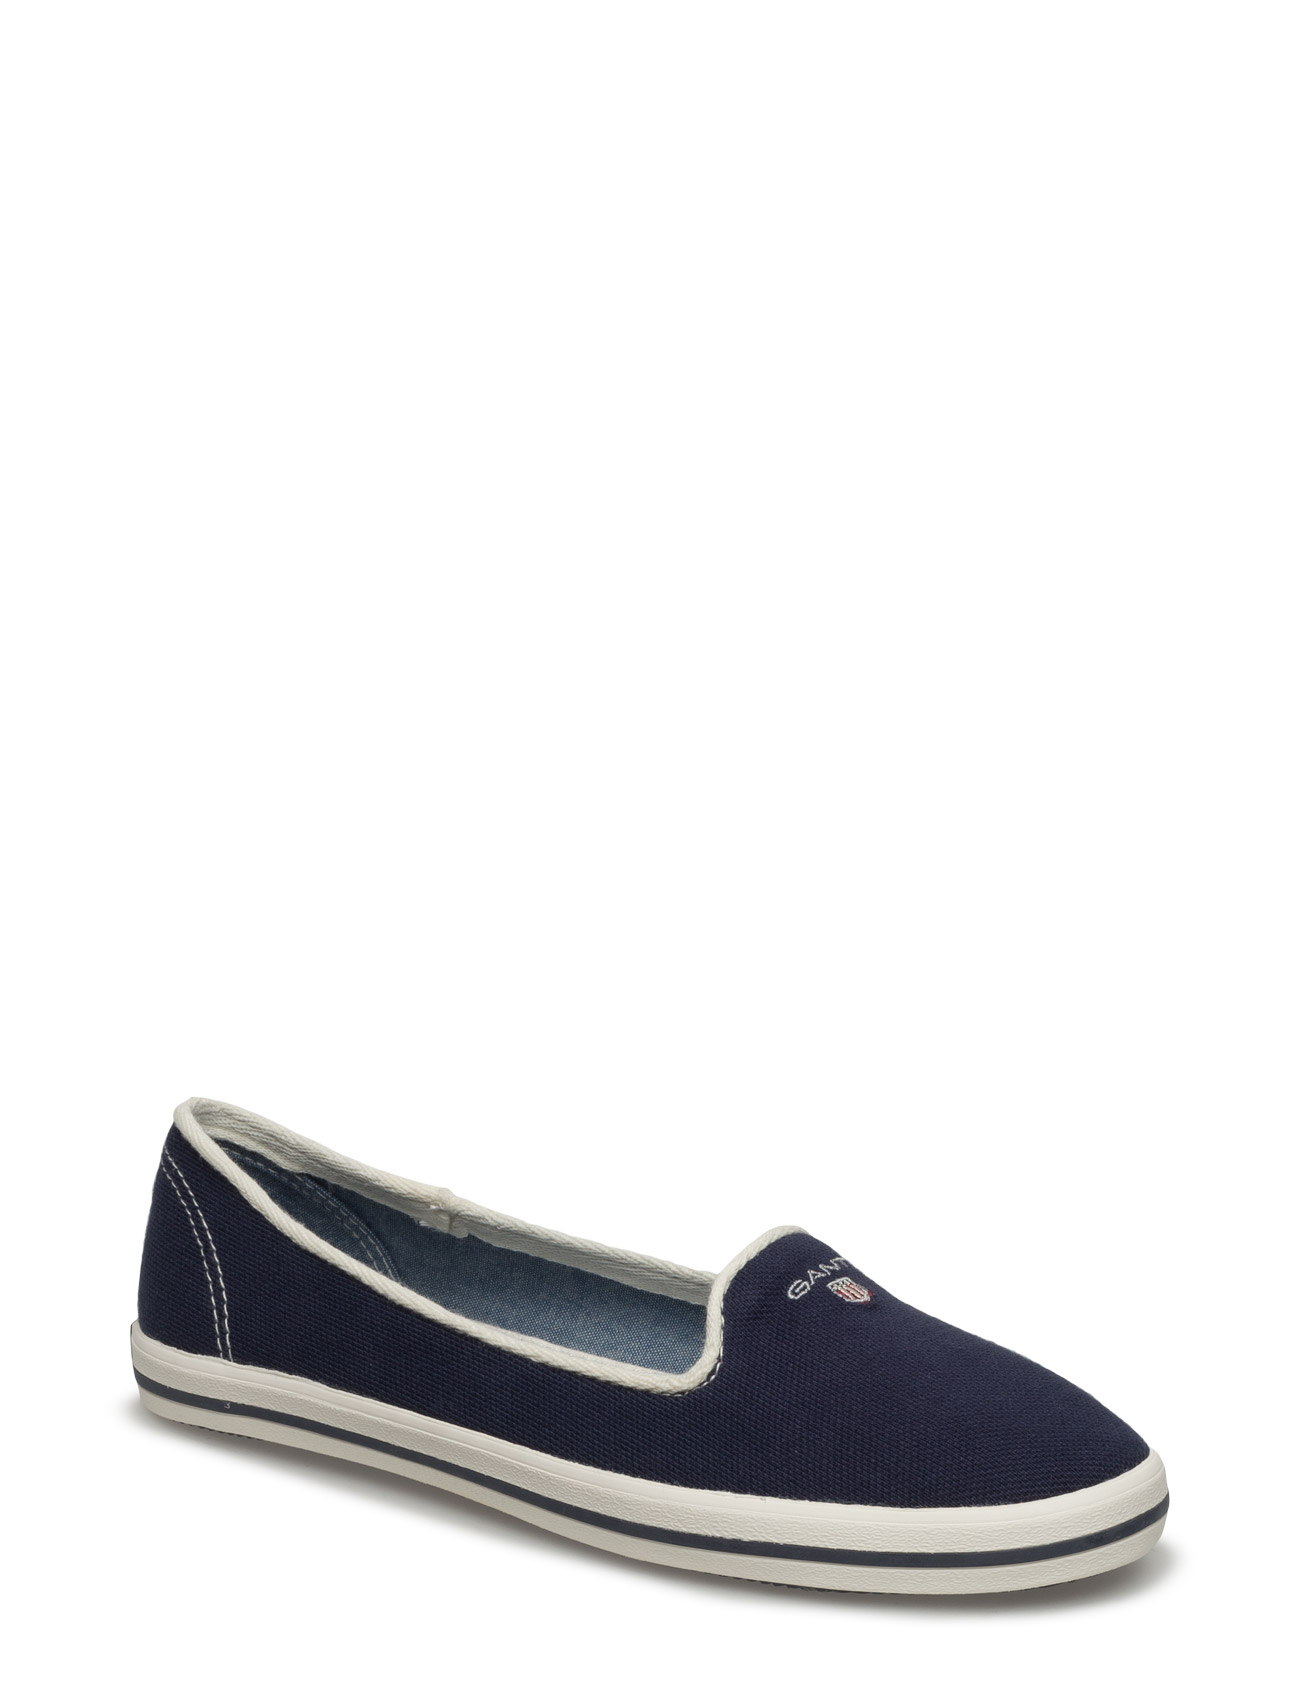 New Haven Slip-On Shoes GANT Sneakers til Damer i Marine blå